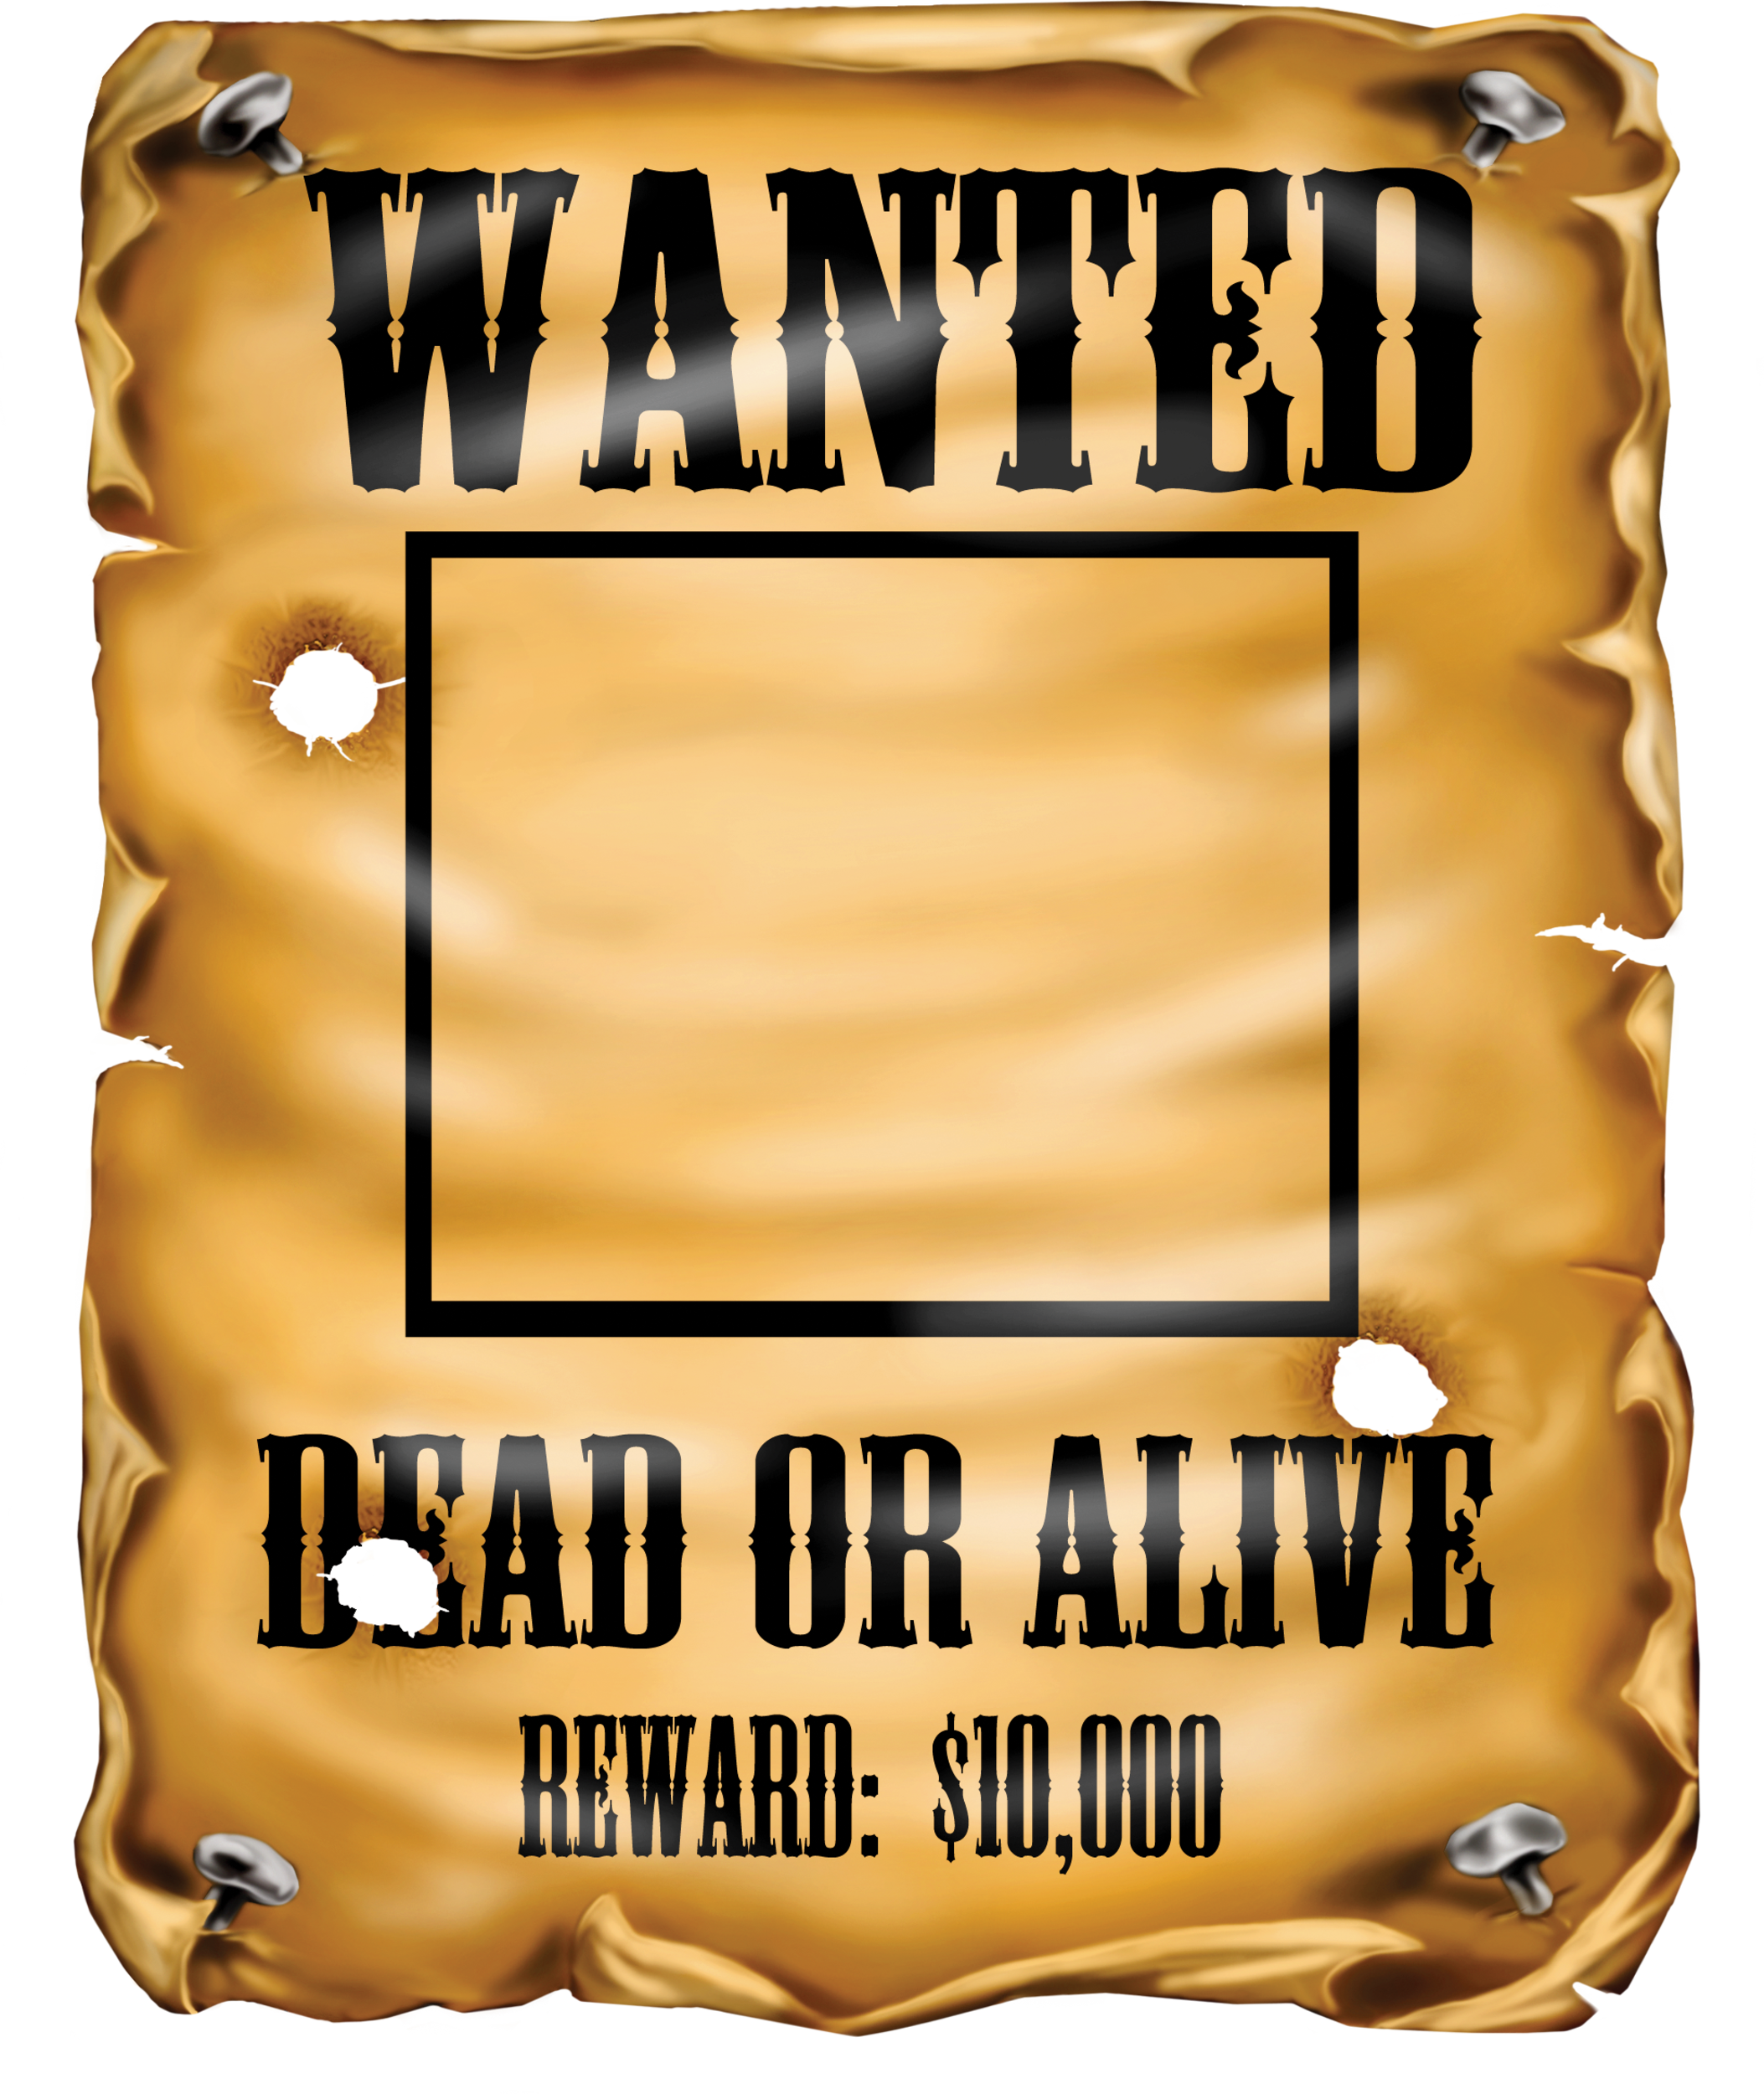 most wanted poster clipart tucson arizona pinterest tucson rh pinterest com most wanted poster clipart